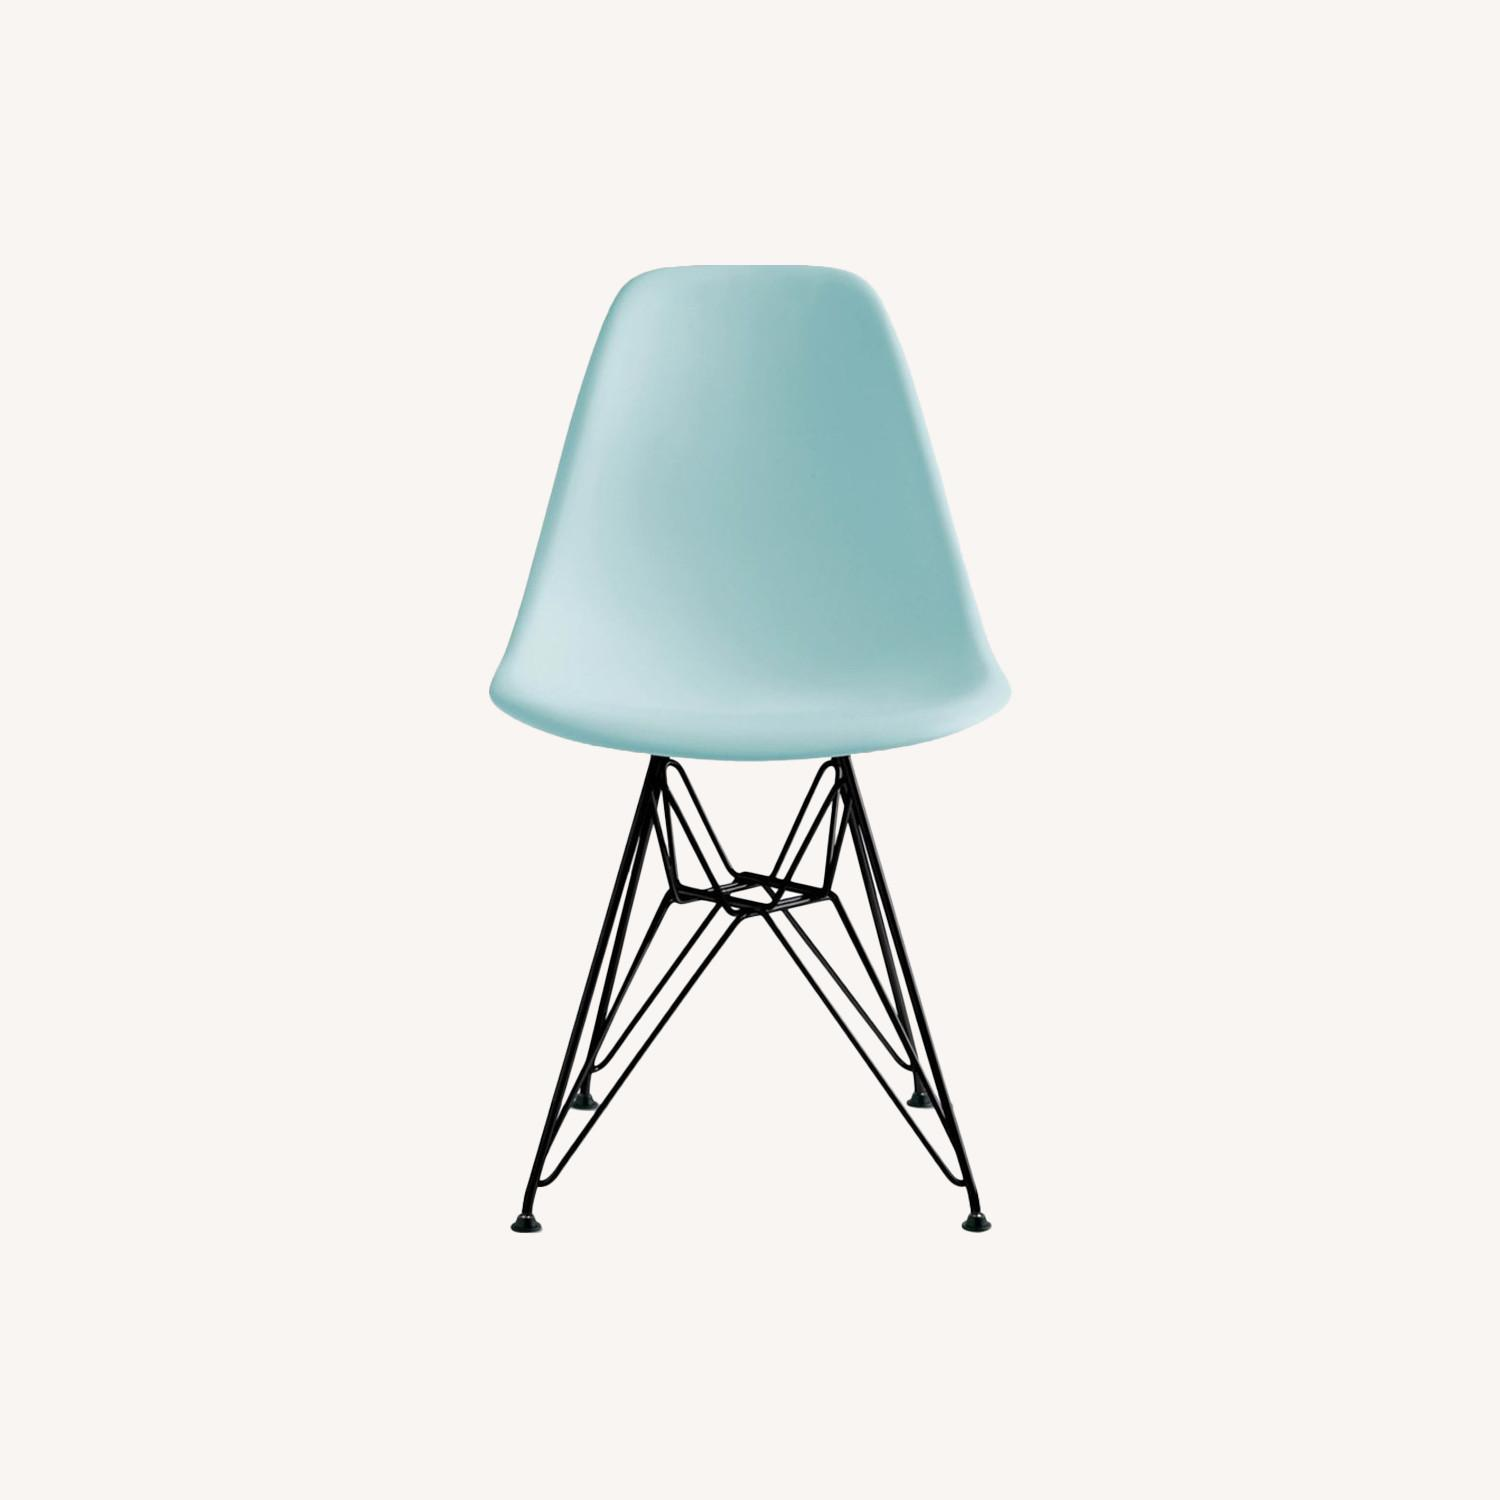 Aqua Sky Dinning Chair by Eames - image-0